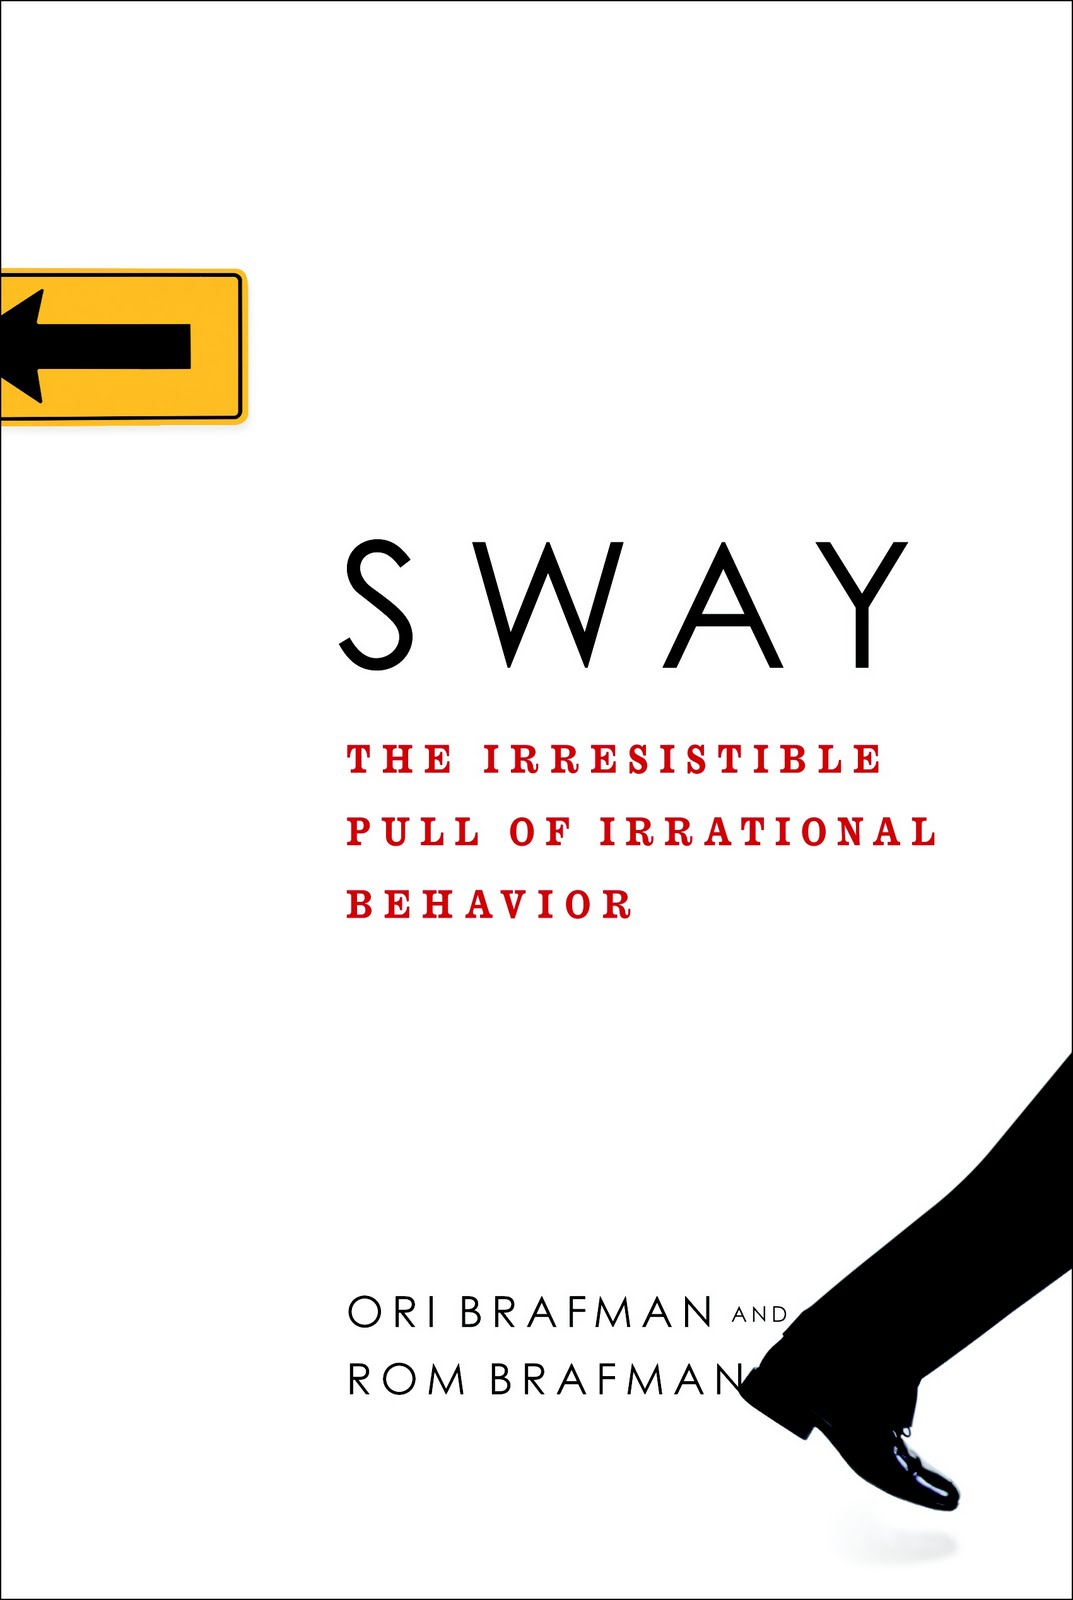 sway_cover